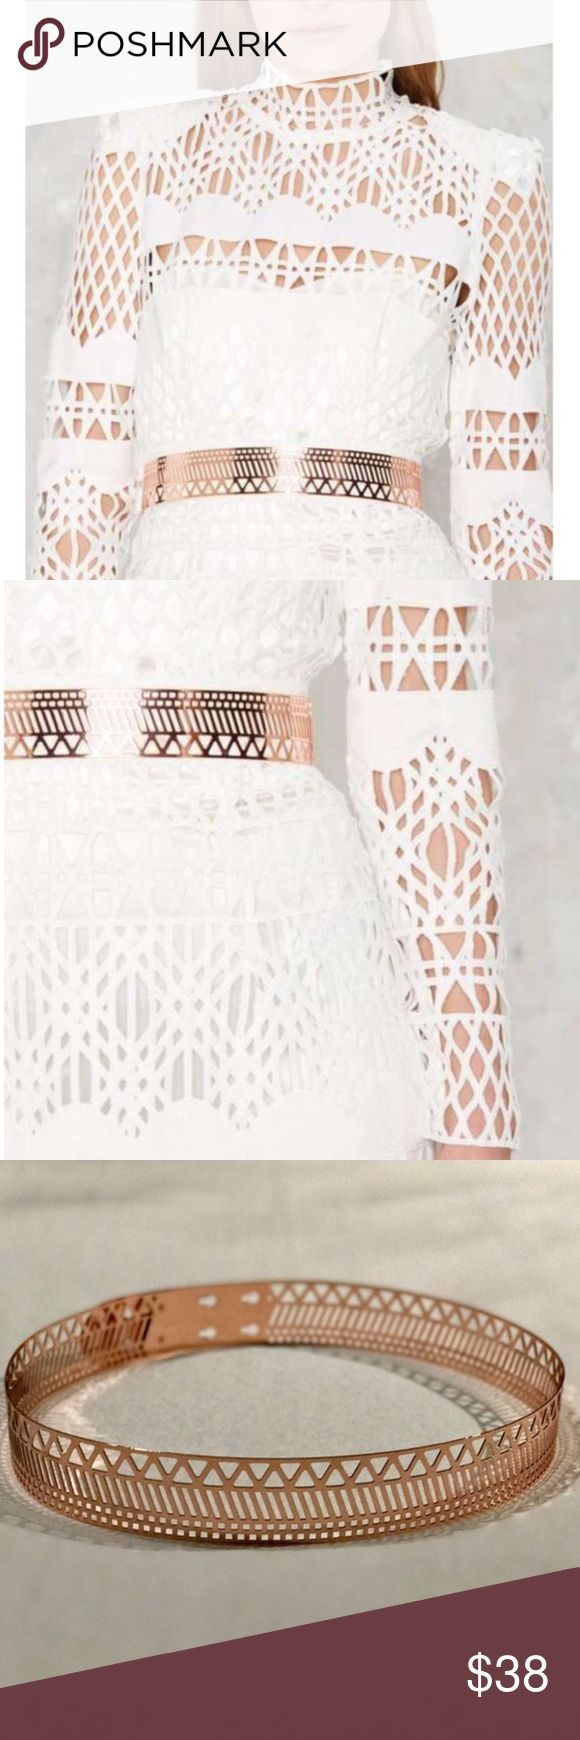 """New Nasty Girl ROSE GOLD METAL BELT SZ XL/XXL New! Super sexy high impact! Rose gold metal waist belt with laser cut out design all around. Easy stud lock closure - fantastic against black or white ! Waist fit - Ranges from a 33"""" waist to a 36"""" waist. Amazing! J22 Nasty Gal Accessories Belts"""